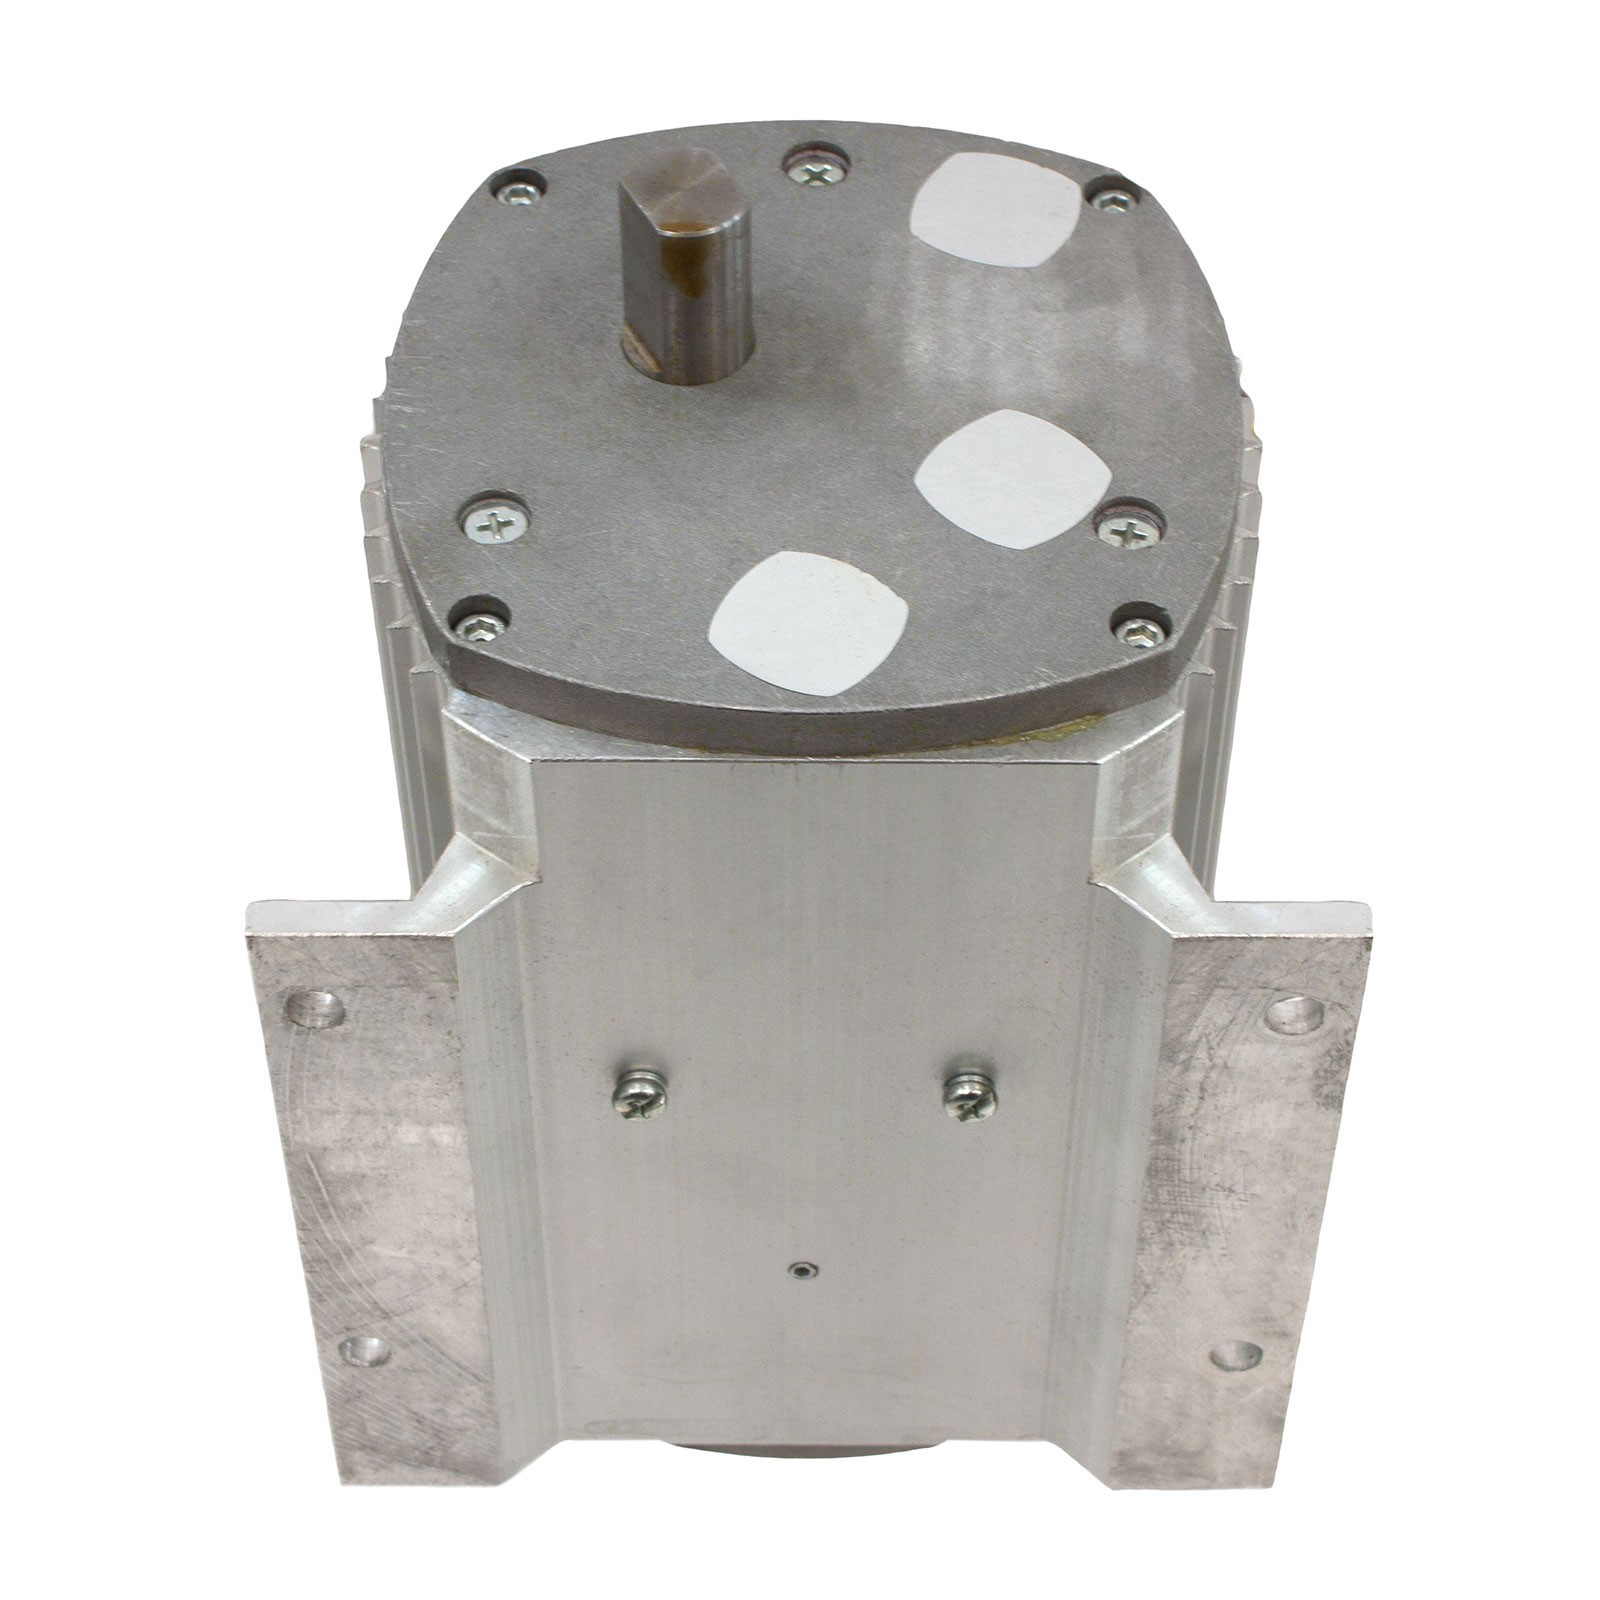 Torque Motor Used With Mbe35 Magnetic Autocontrol